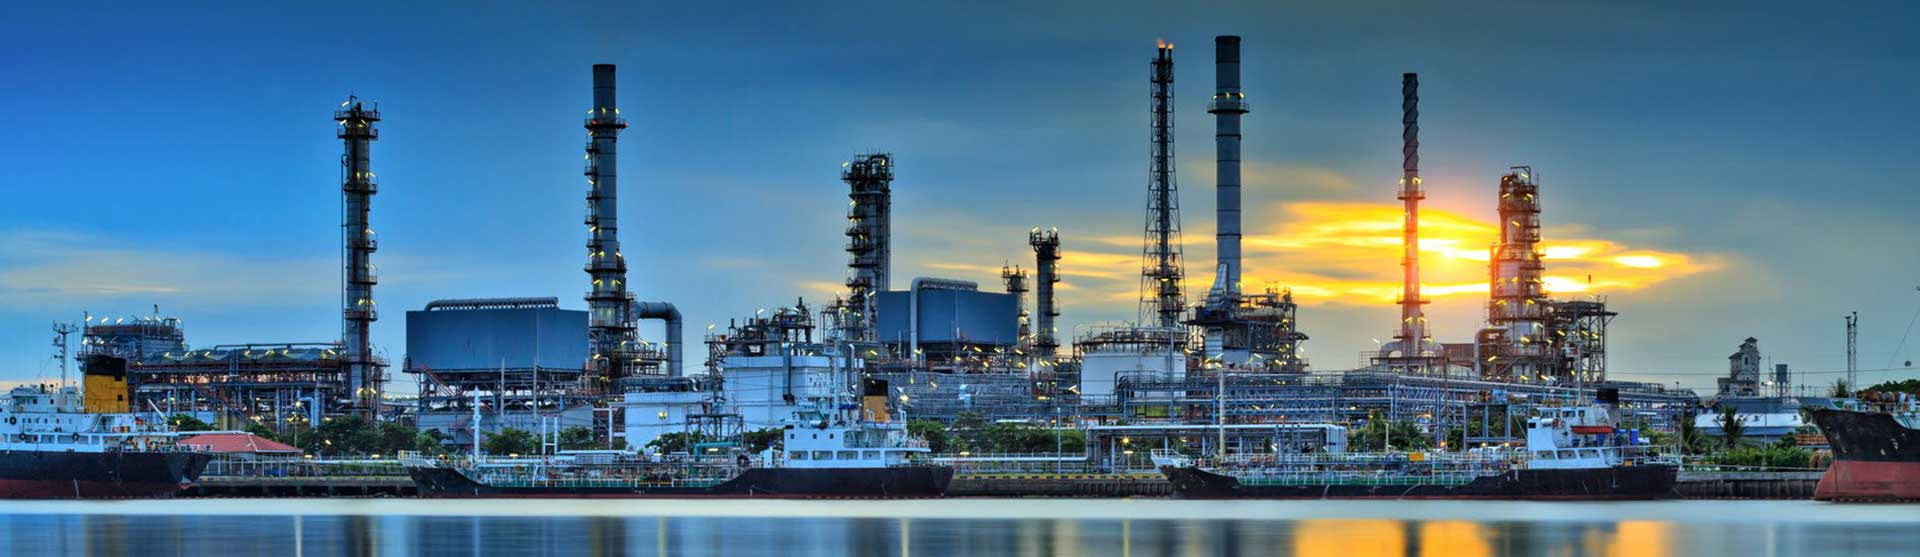 Read more about the article Dastur Awarded Prestigious USTDA Funded Project for BPCL Kochi Refinery to Evaluate Feasibility of Petcoke Gasification and Value Added Petrochemical and Clean Fuel Products